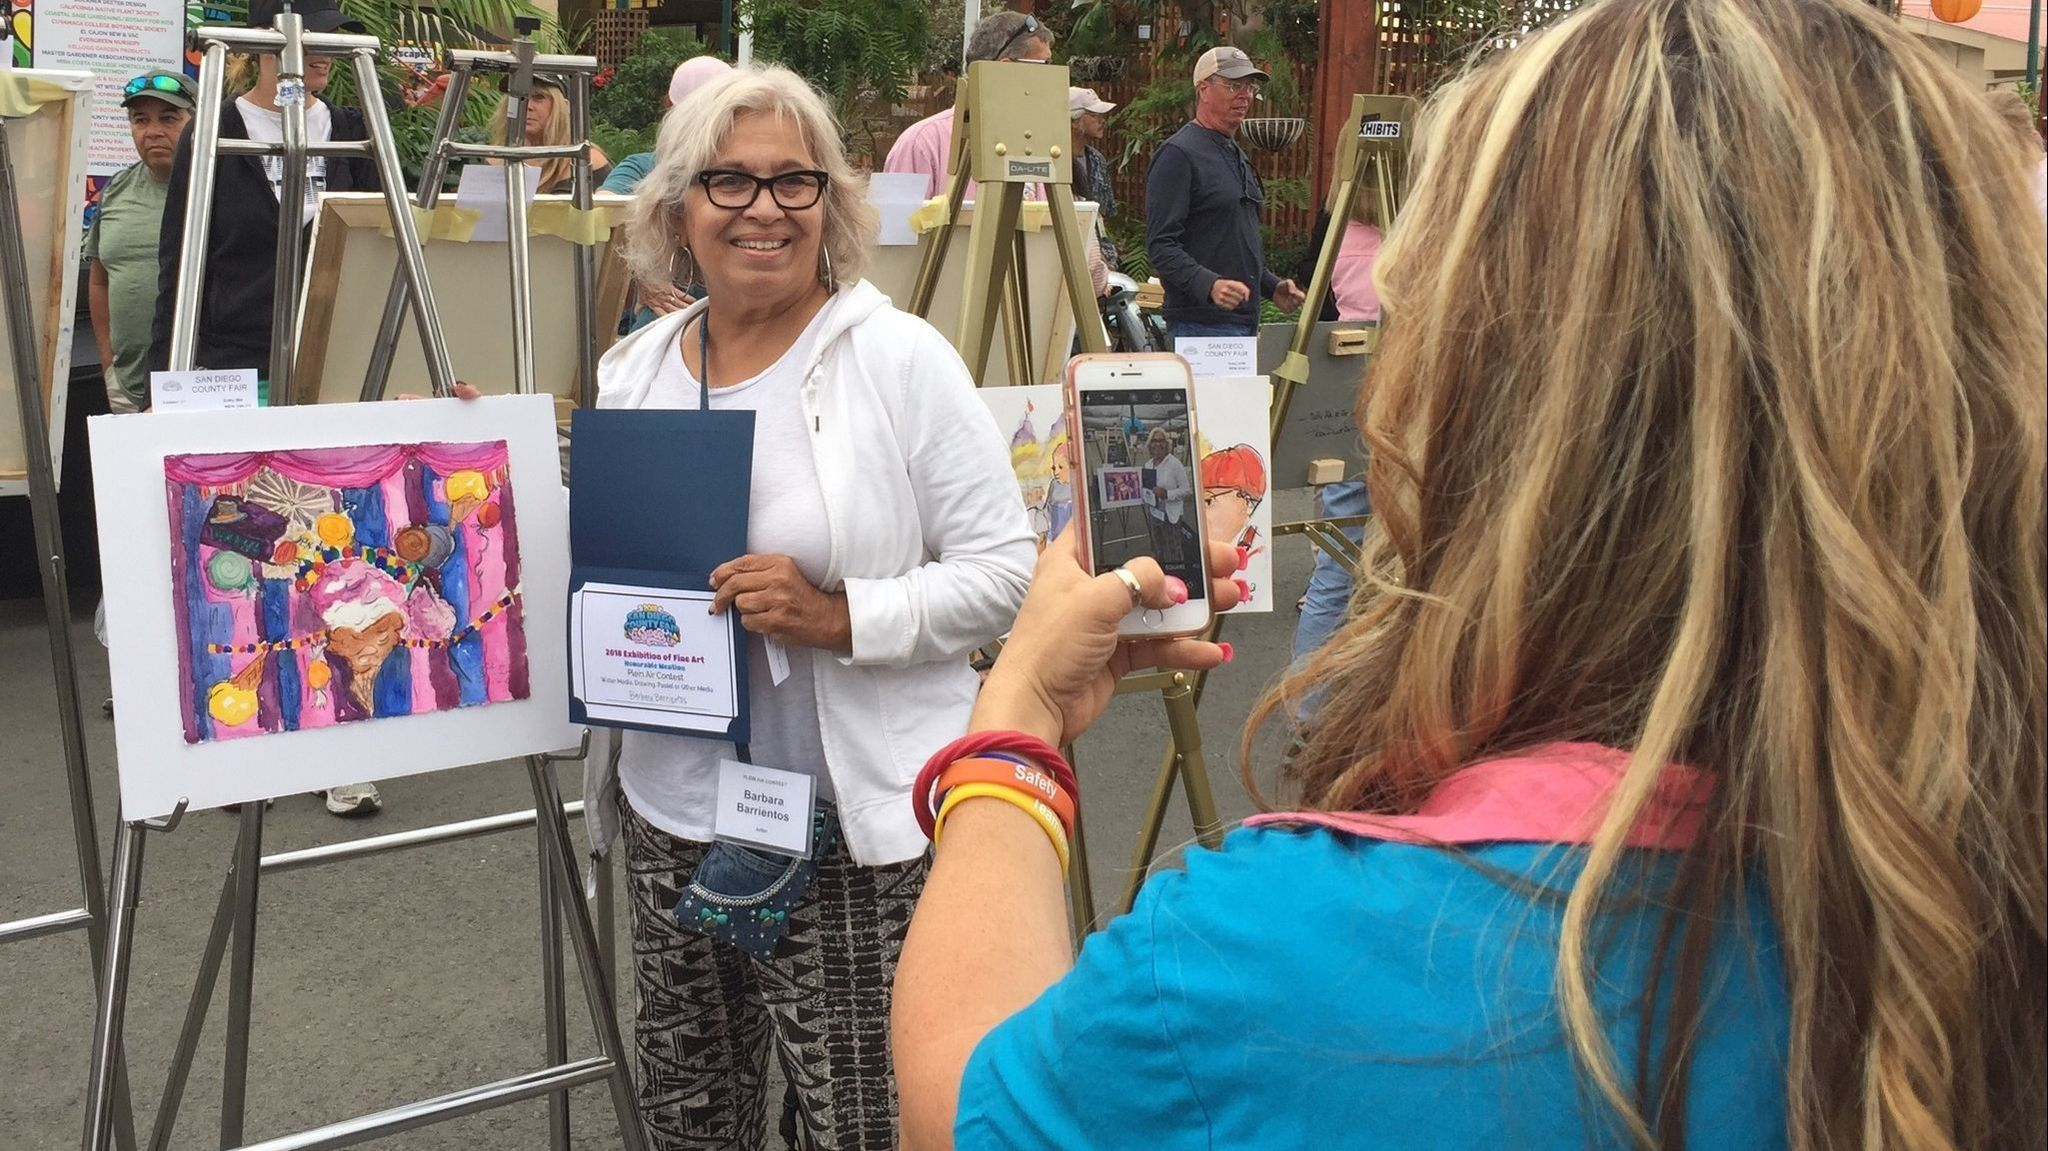 Painting in public provides benefits, artists find